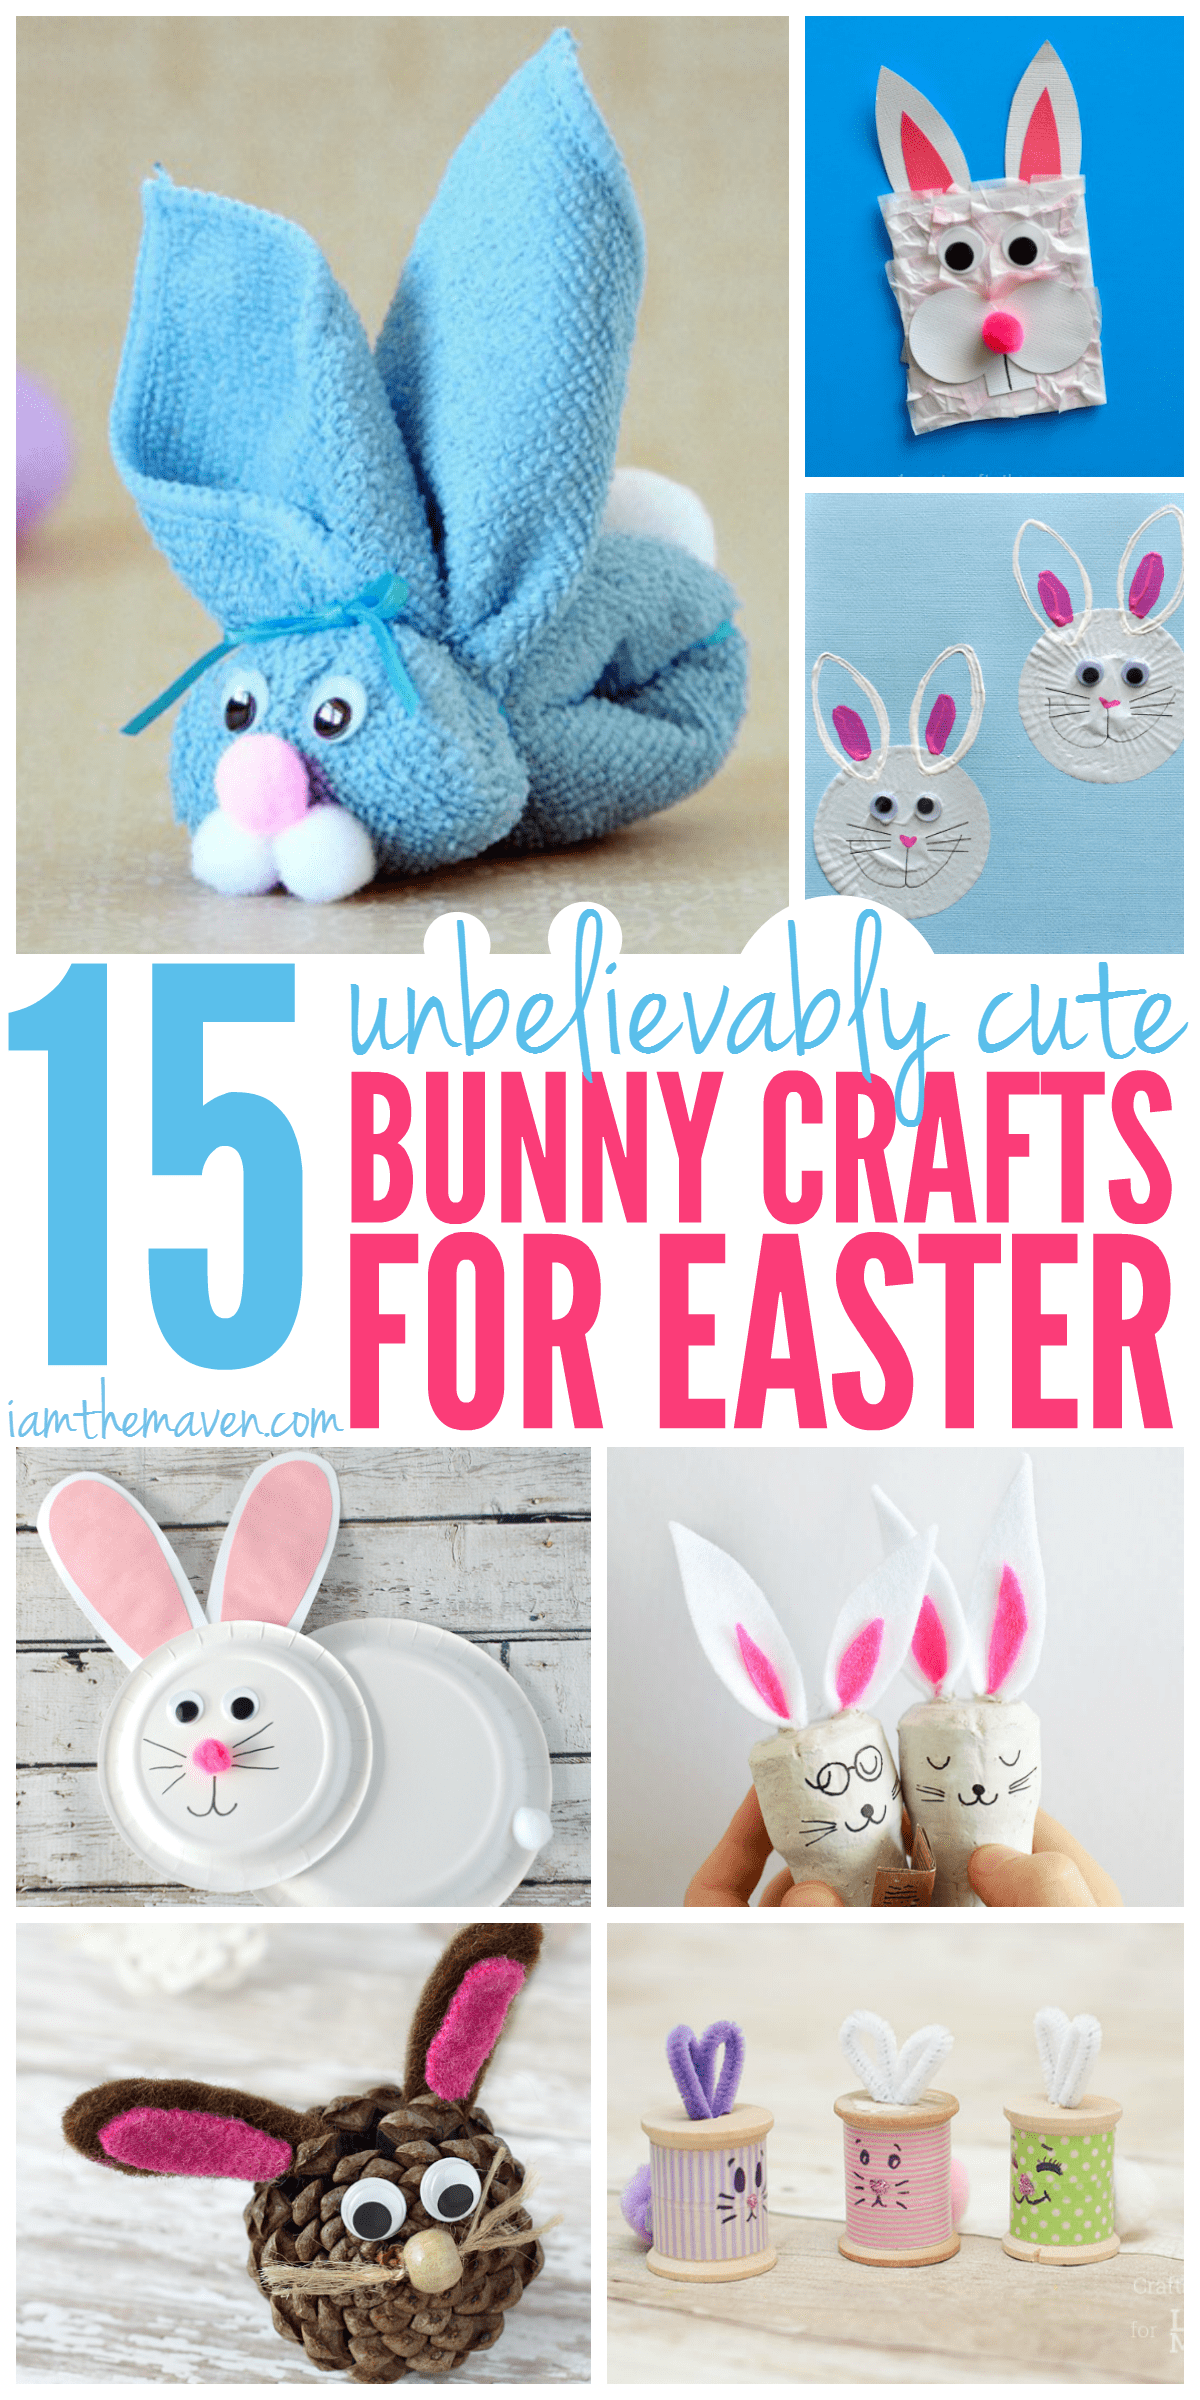 You will adore these unbelievably cute bunny crafts!